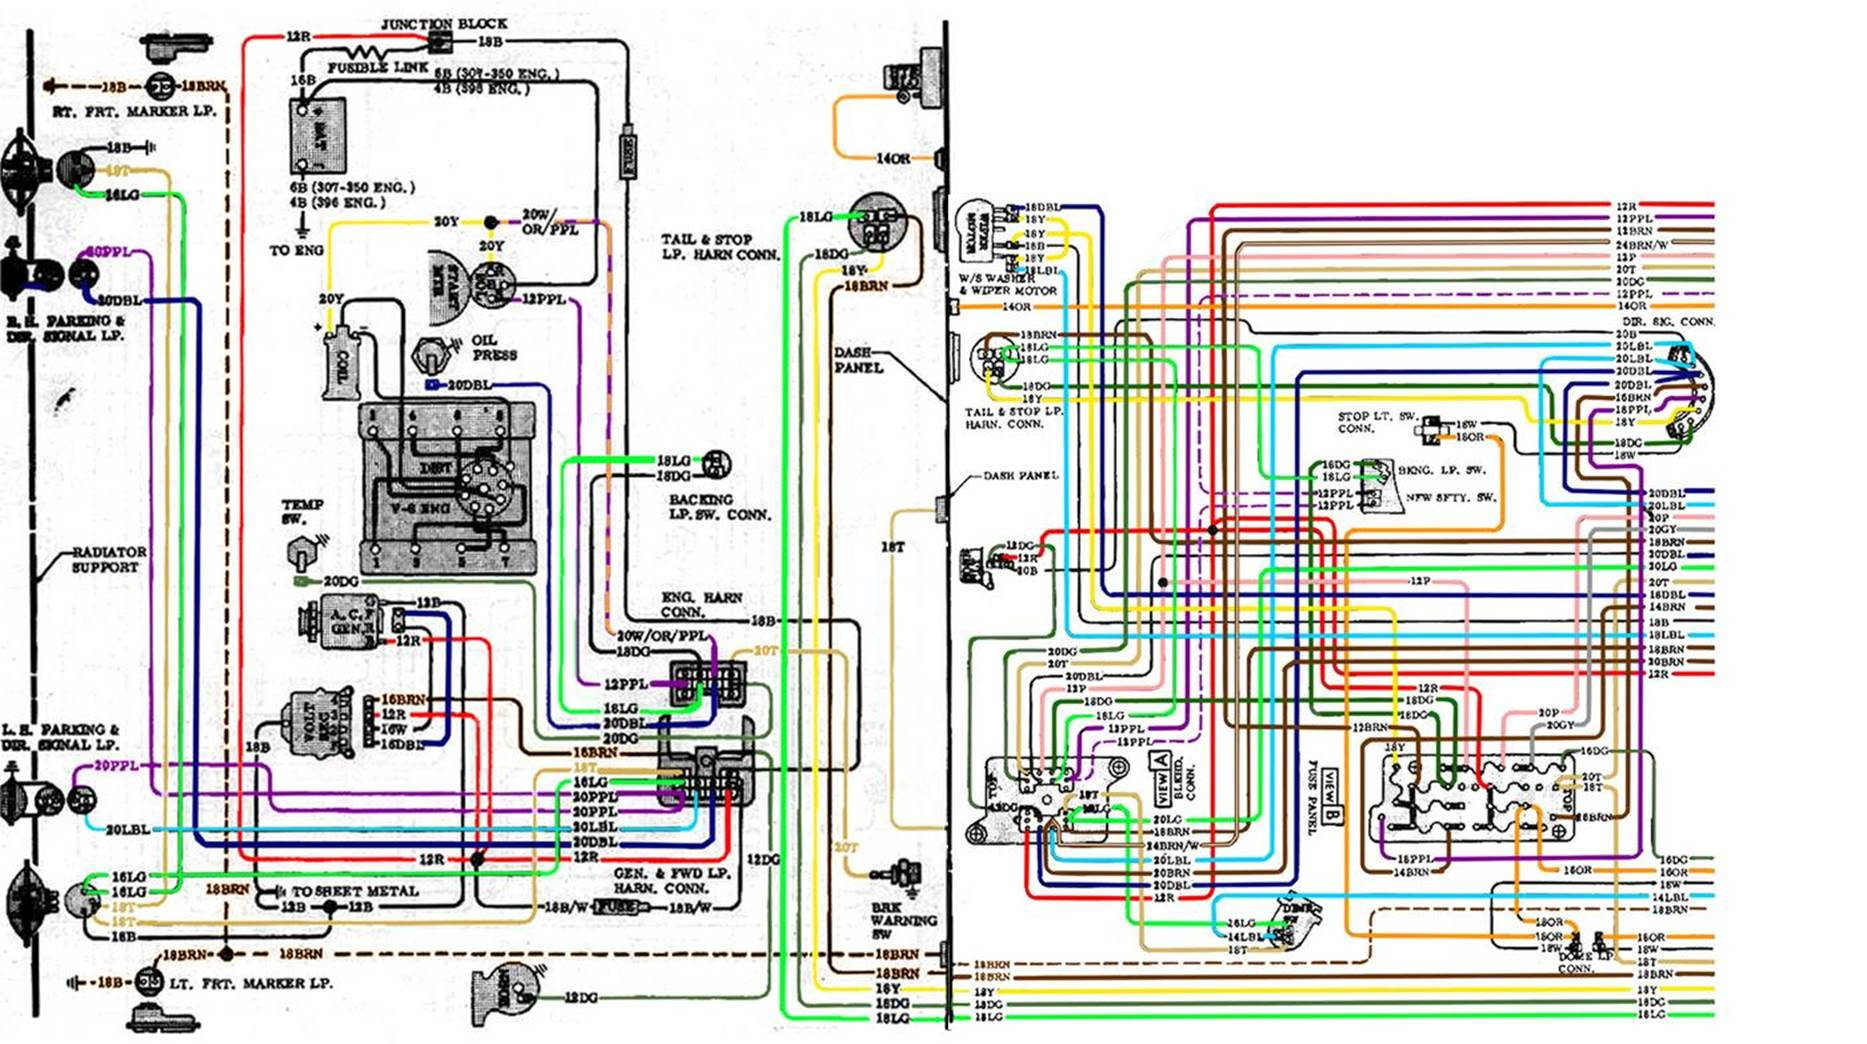 image002 67 72 chevy wiring diagram 67 chevy c10 fuse box diagram at nearapp.co